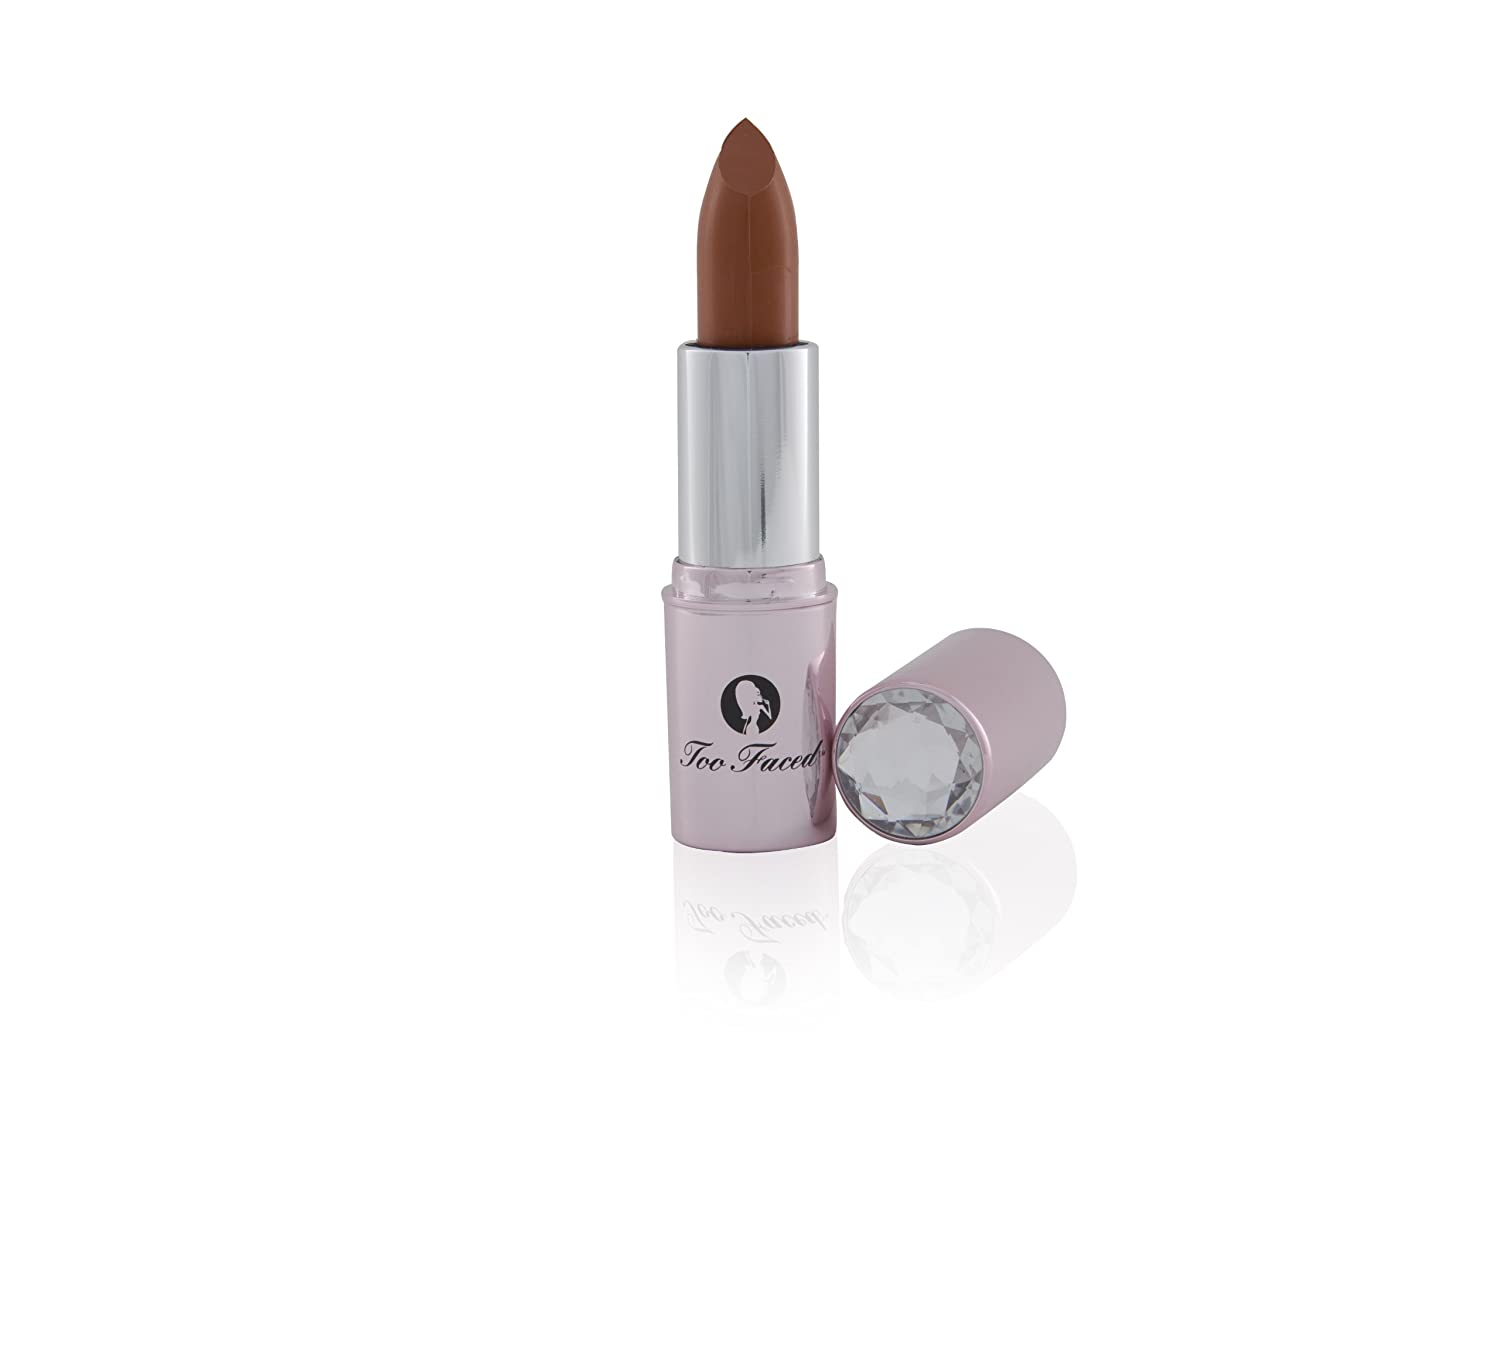 Too Faced Cosmetics Lip of Luxury Lipstick, Totally Nude, 0.12-Ounce